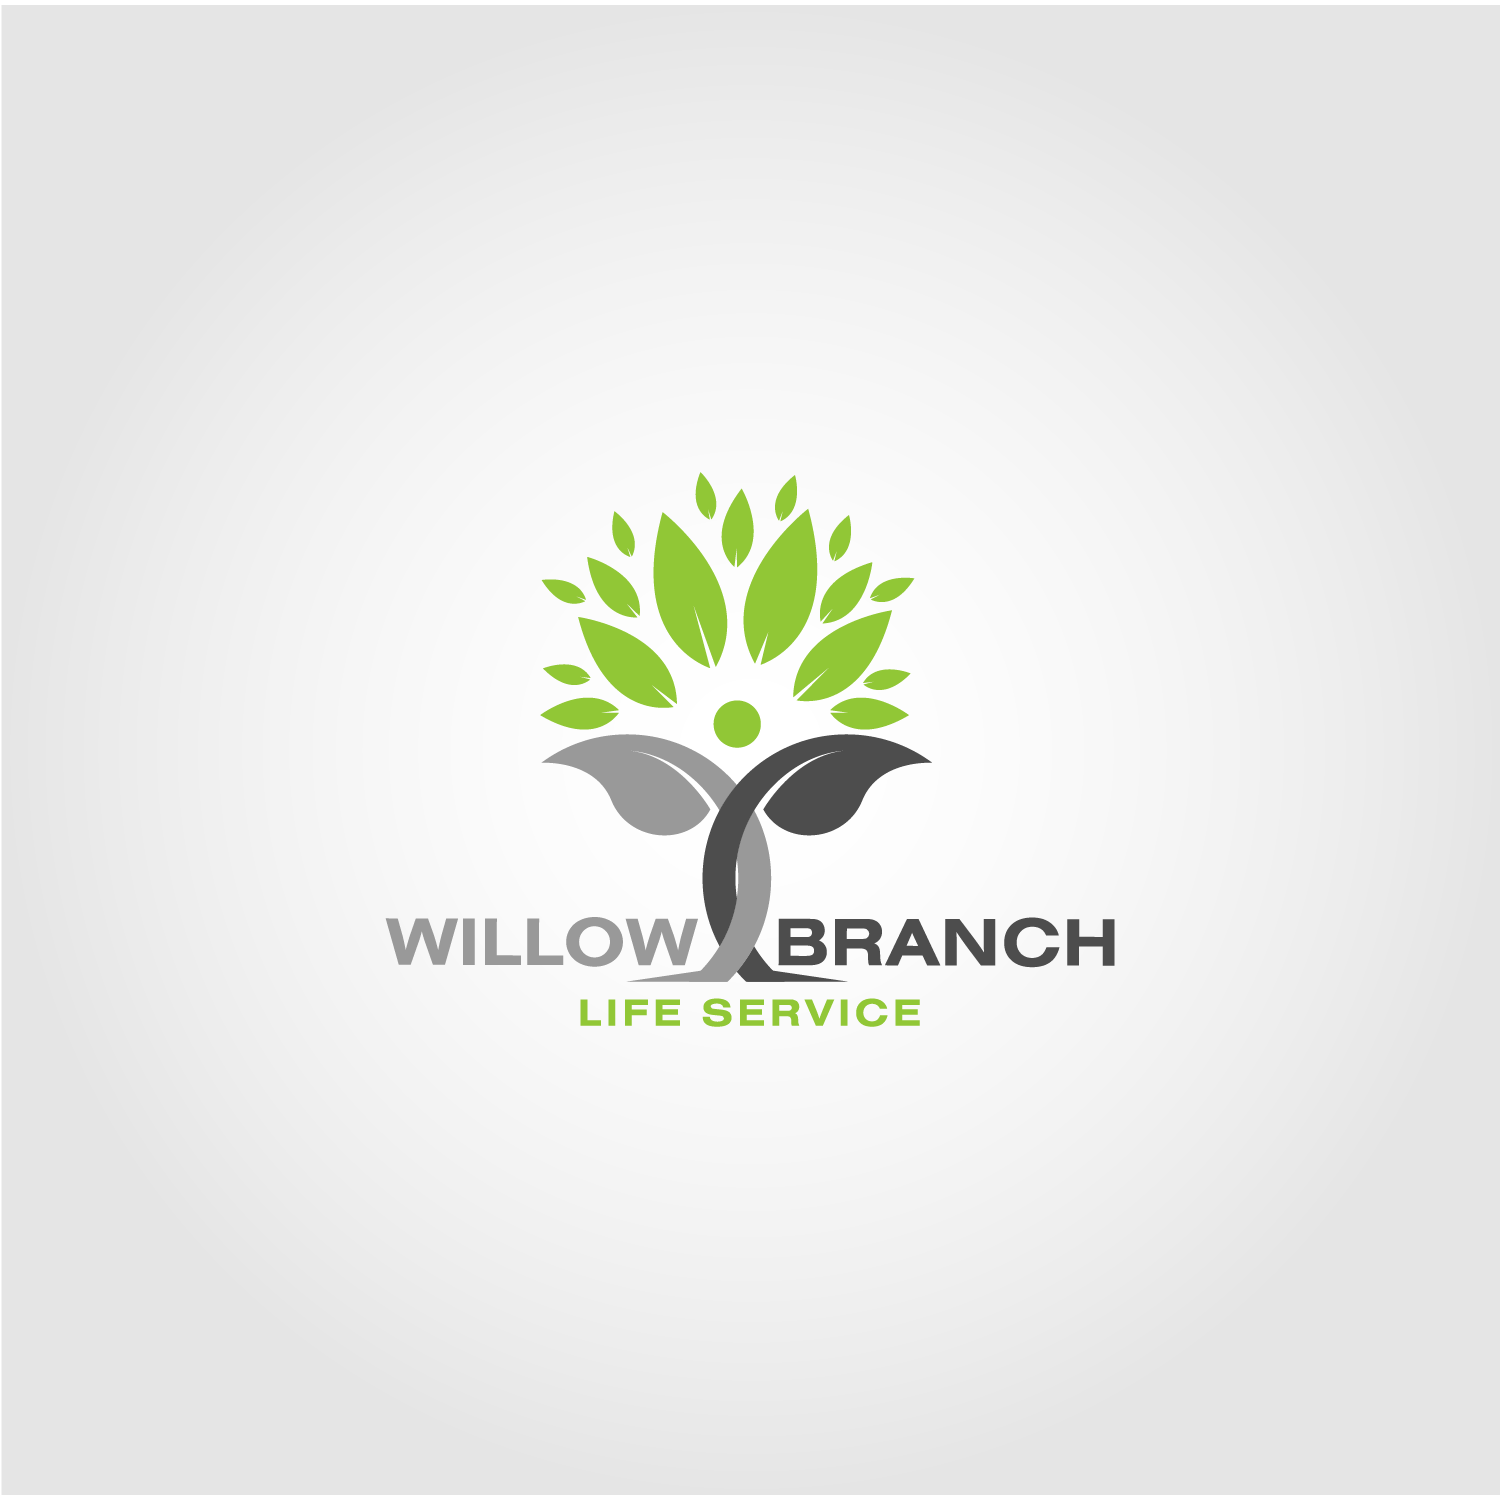 Logo Design by Batter Fly - Entry No. 177 in the Logo Design Contest Artistic Logo Design for Willow Branch Life Service.